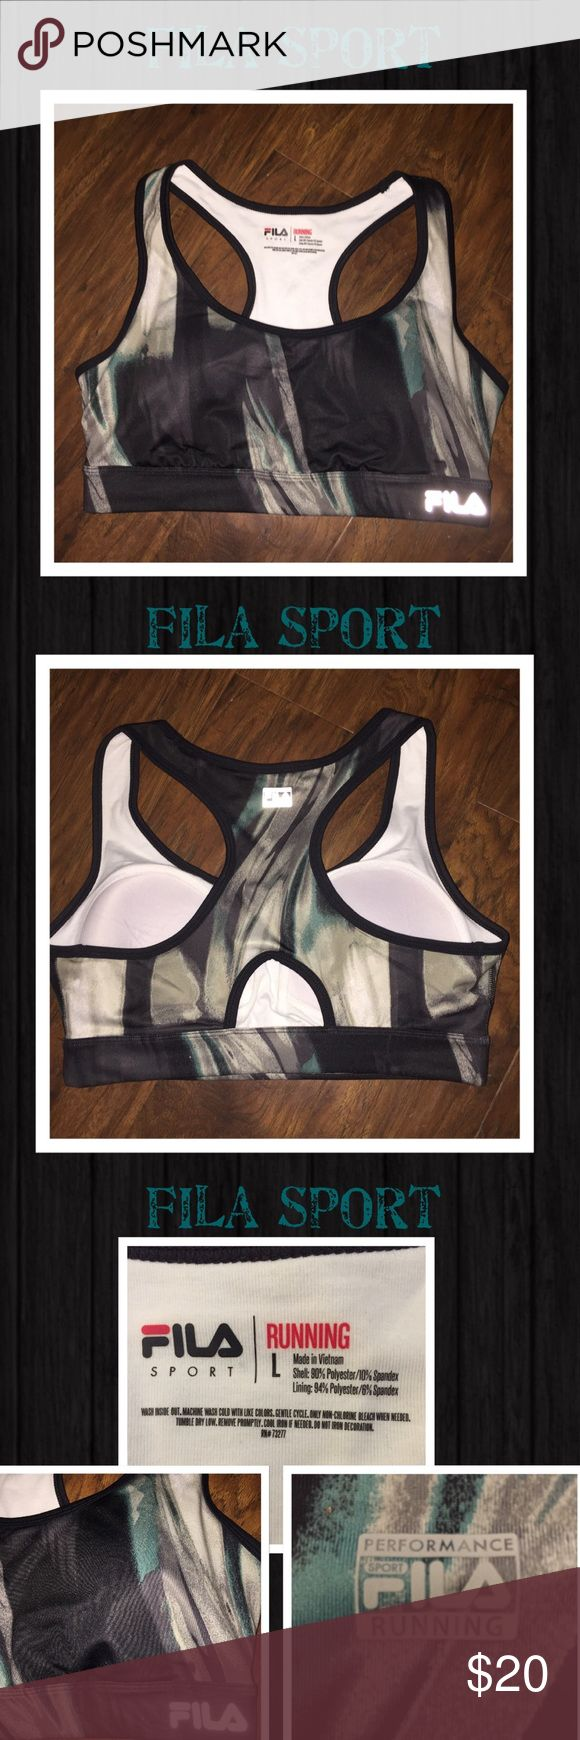 Fila sport performance running large sports bra Made by Fila Sport this is a performance running sports bra size large. Has an edgy painted look with colors of aquamarine, charcoal and heather gray. Fila insignia reflects light. Has soft cups for breasts support and hold firmly in place. Great condition Fila Intimates & Sleepwear Bras